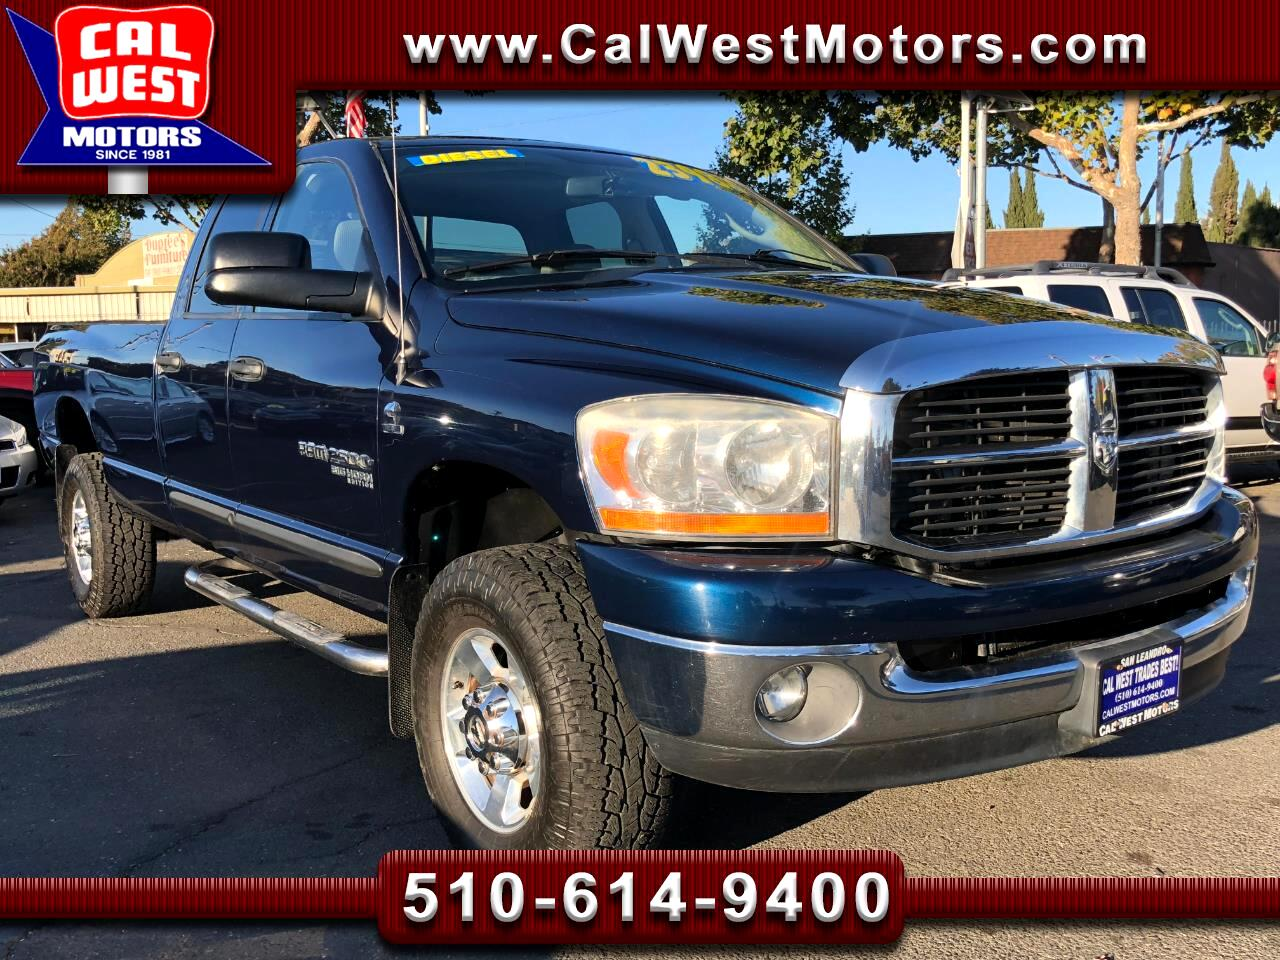 2006 Dodge Ram 2500 4X4 Quad Cab 8FT CumminsDiesel 1Owner SuperClean